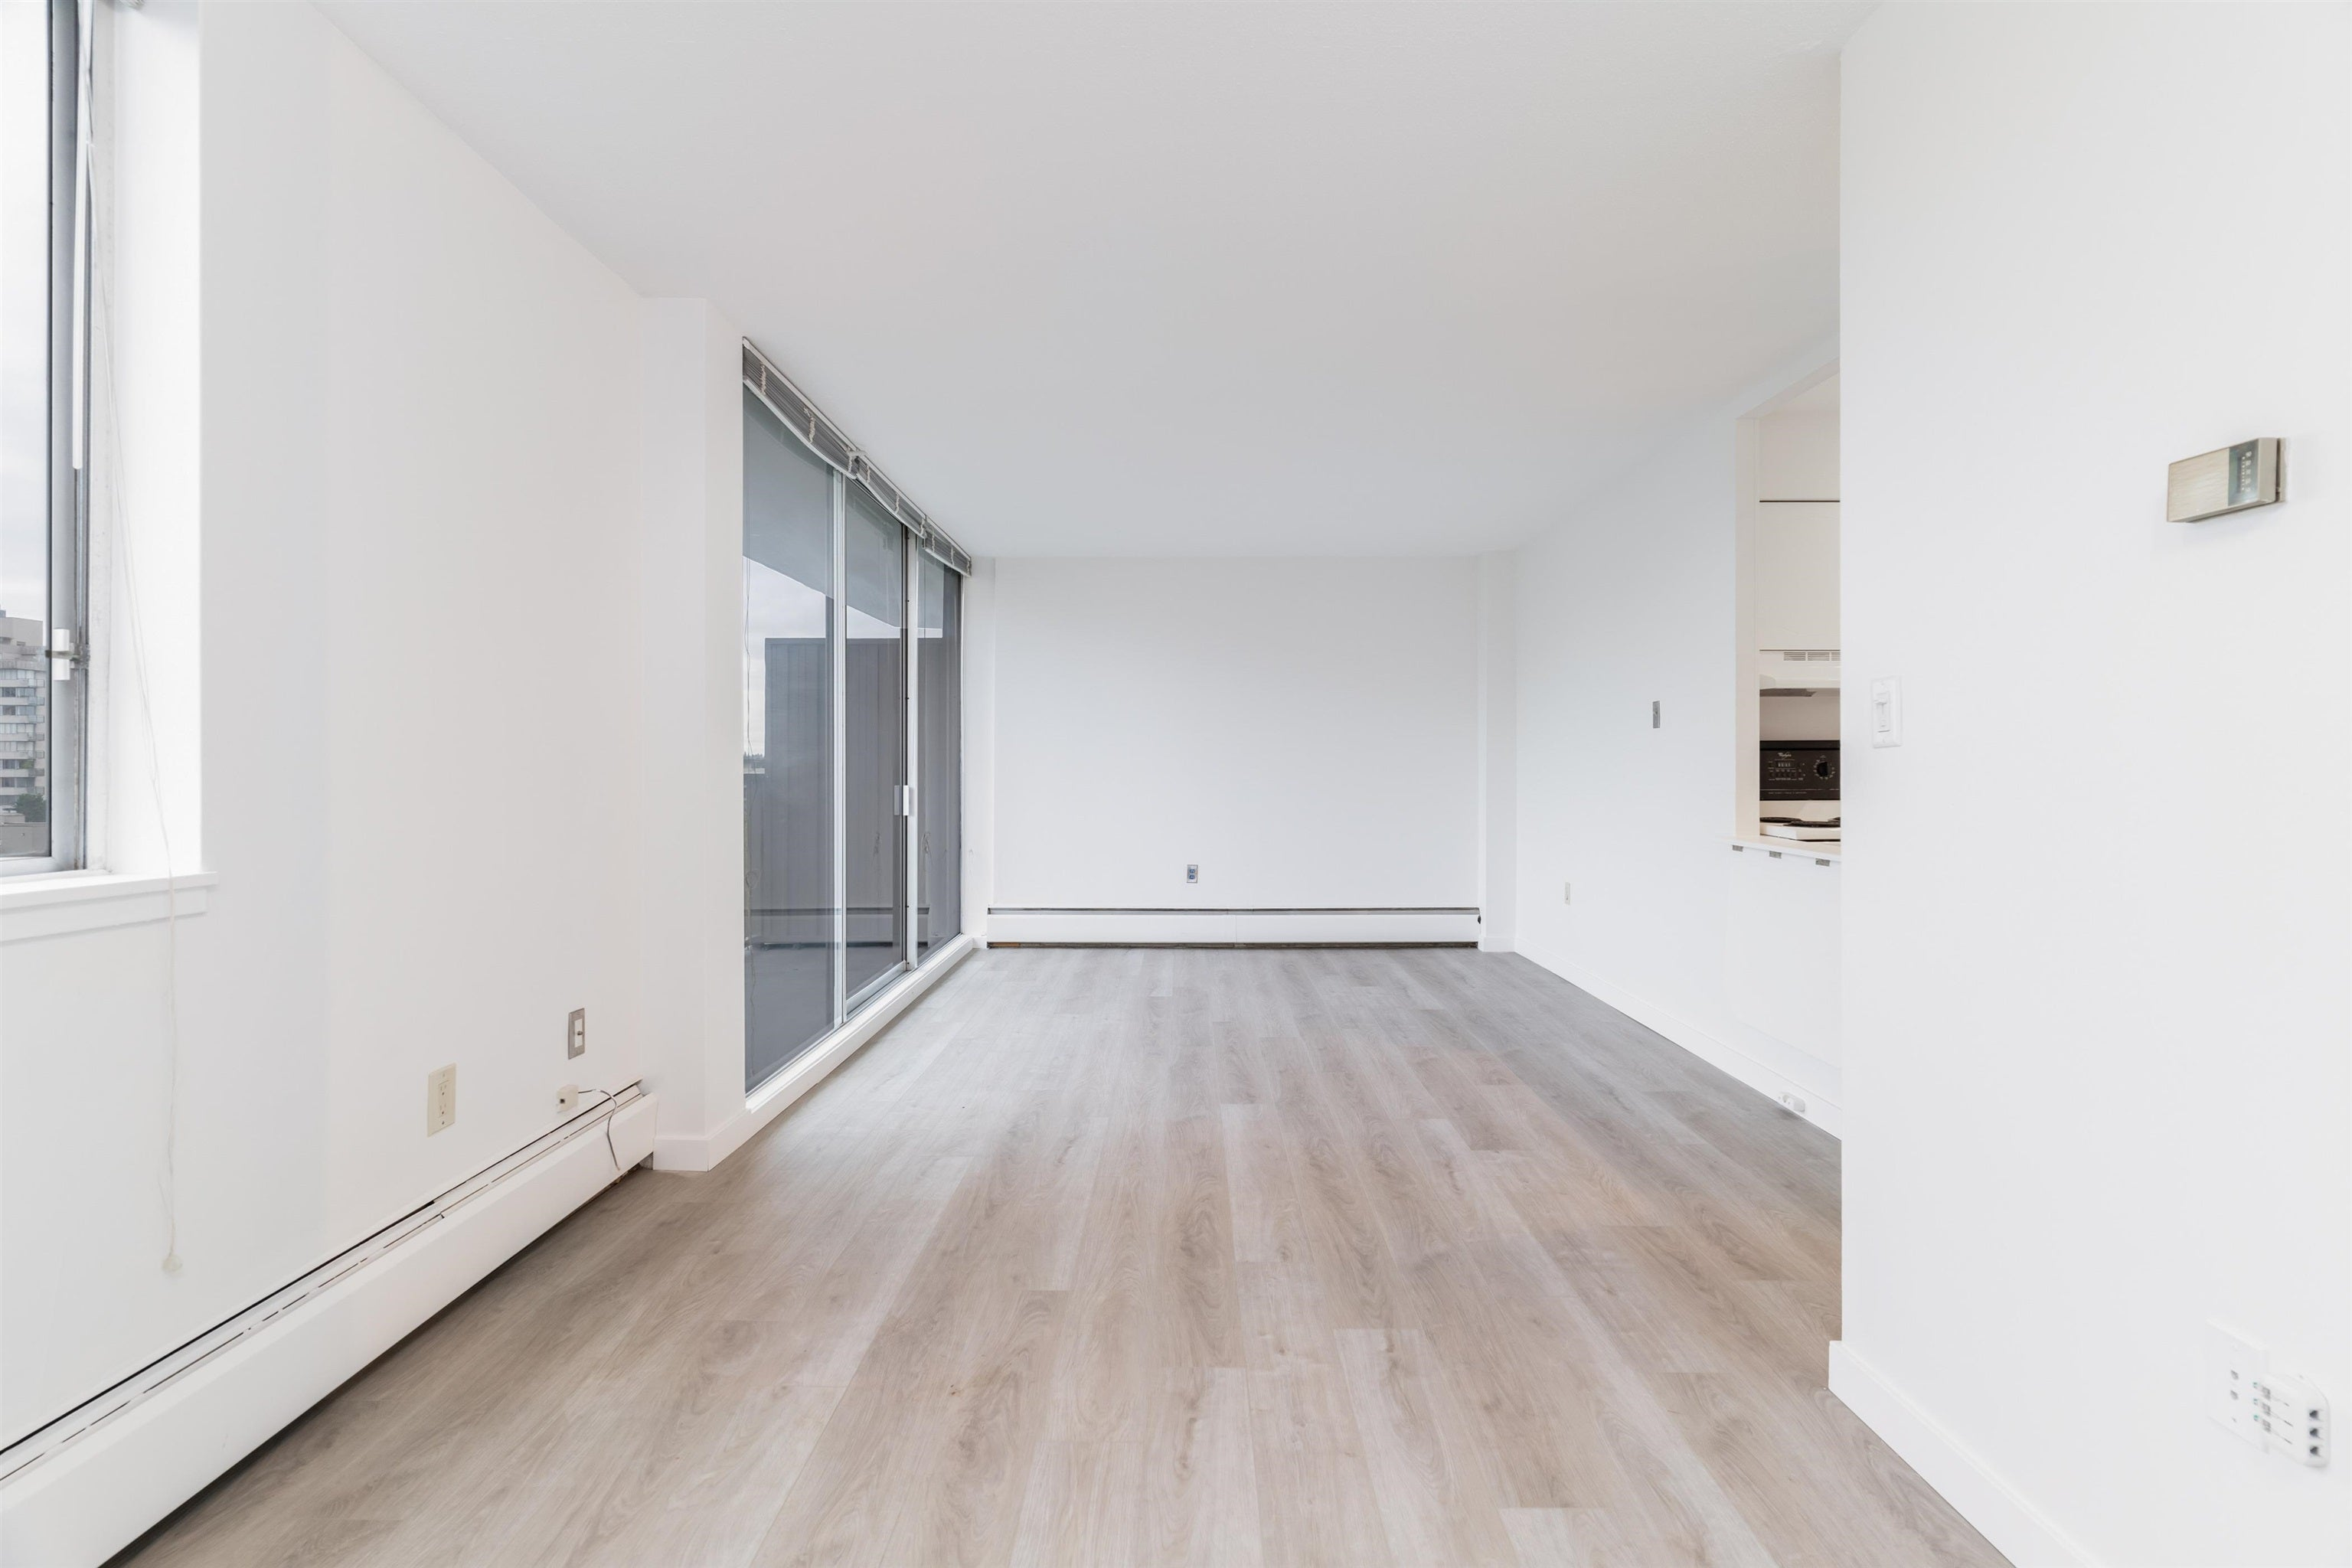 806 1251 CARDERO STREET - West End VW Apartment/Condo for sale, 1 Bedroom (R2625738) - #5